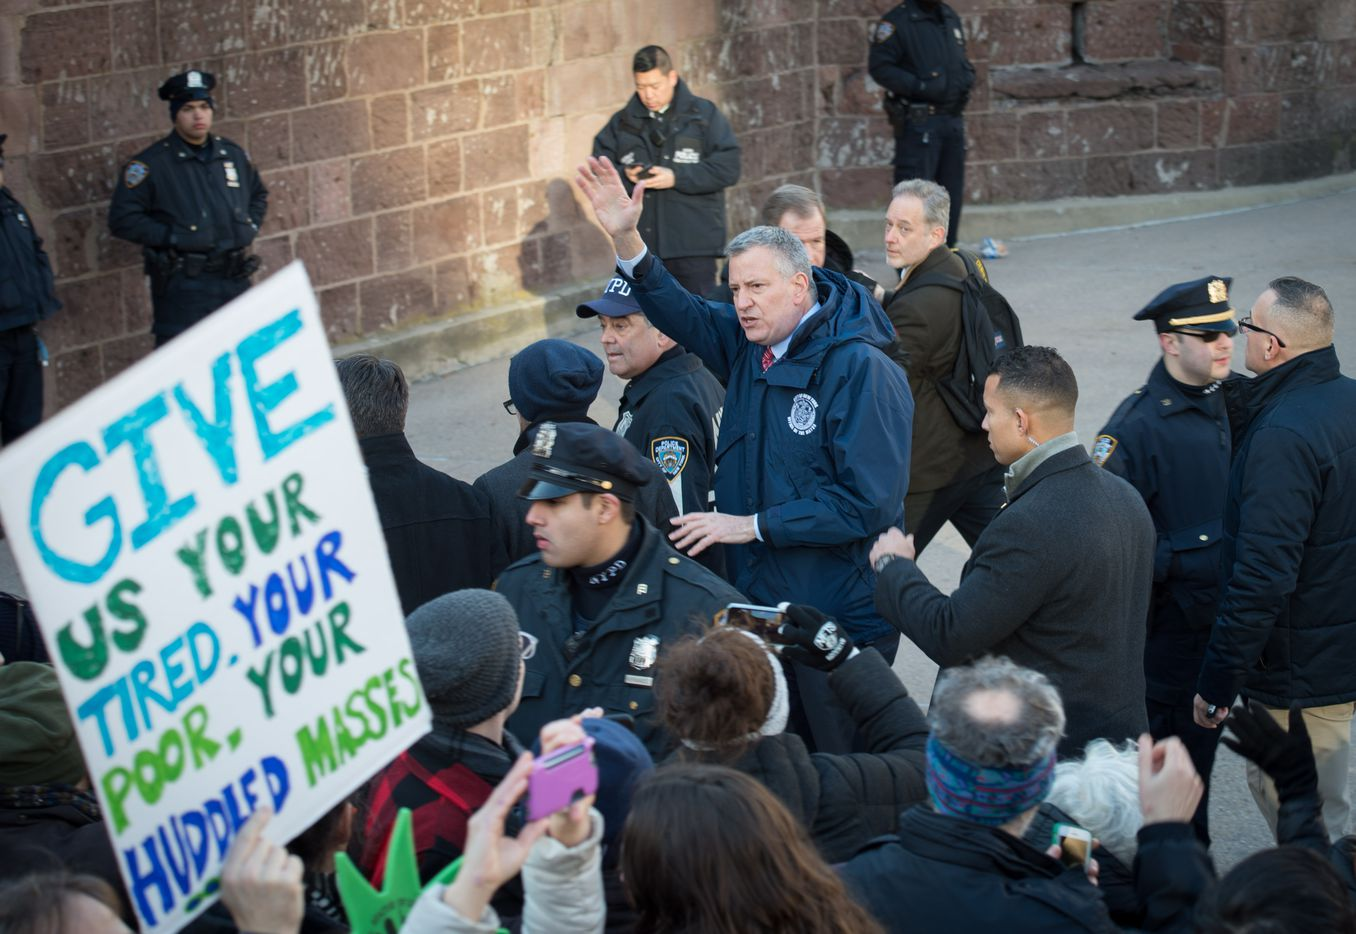 NYC Mayor Bill de Blasio waves as protesters gather in Battery Park and march to the offices of Customs and Border Patrol in Manhattan to protest President Trump's Executive order.